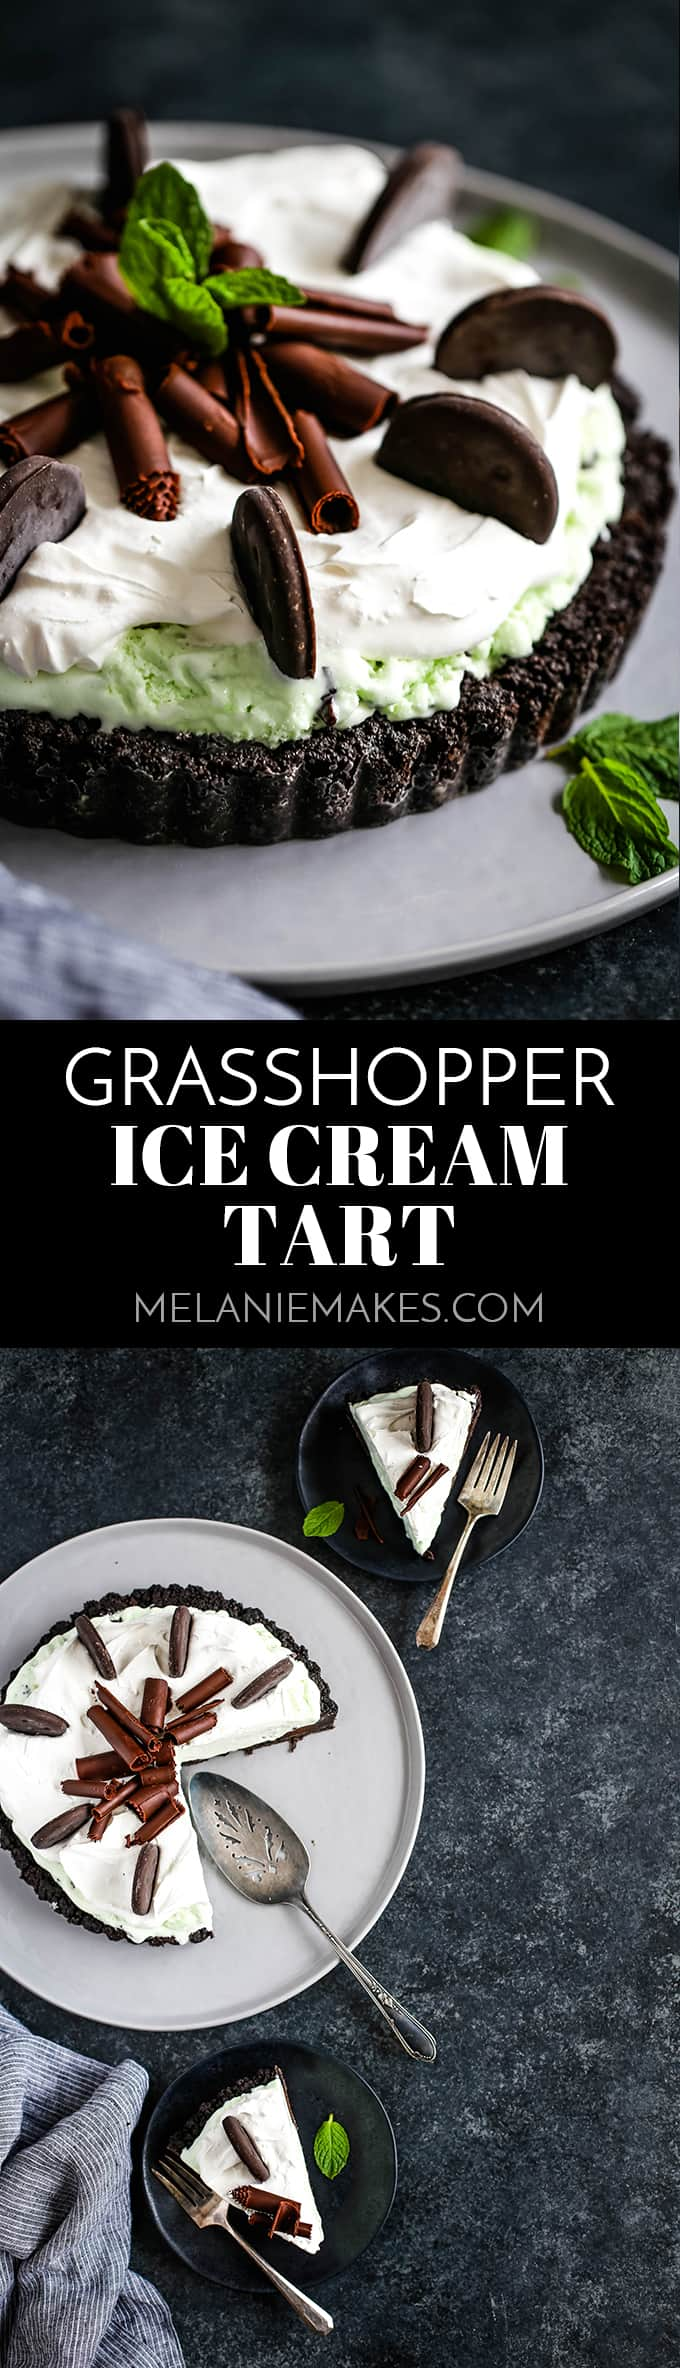 This no bake Grasshopper Ice Cream Tart couldn't be easier! Decadent chocolate and cooling mint are a knockout flavor duo in this Oreo crusted treat. #chocolate #mint #icecream #nobake #oreo #easyrecipe